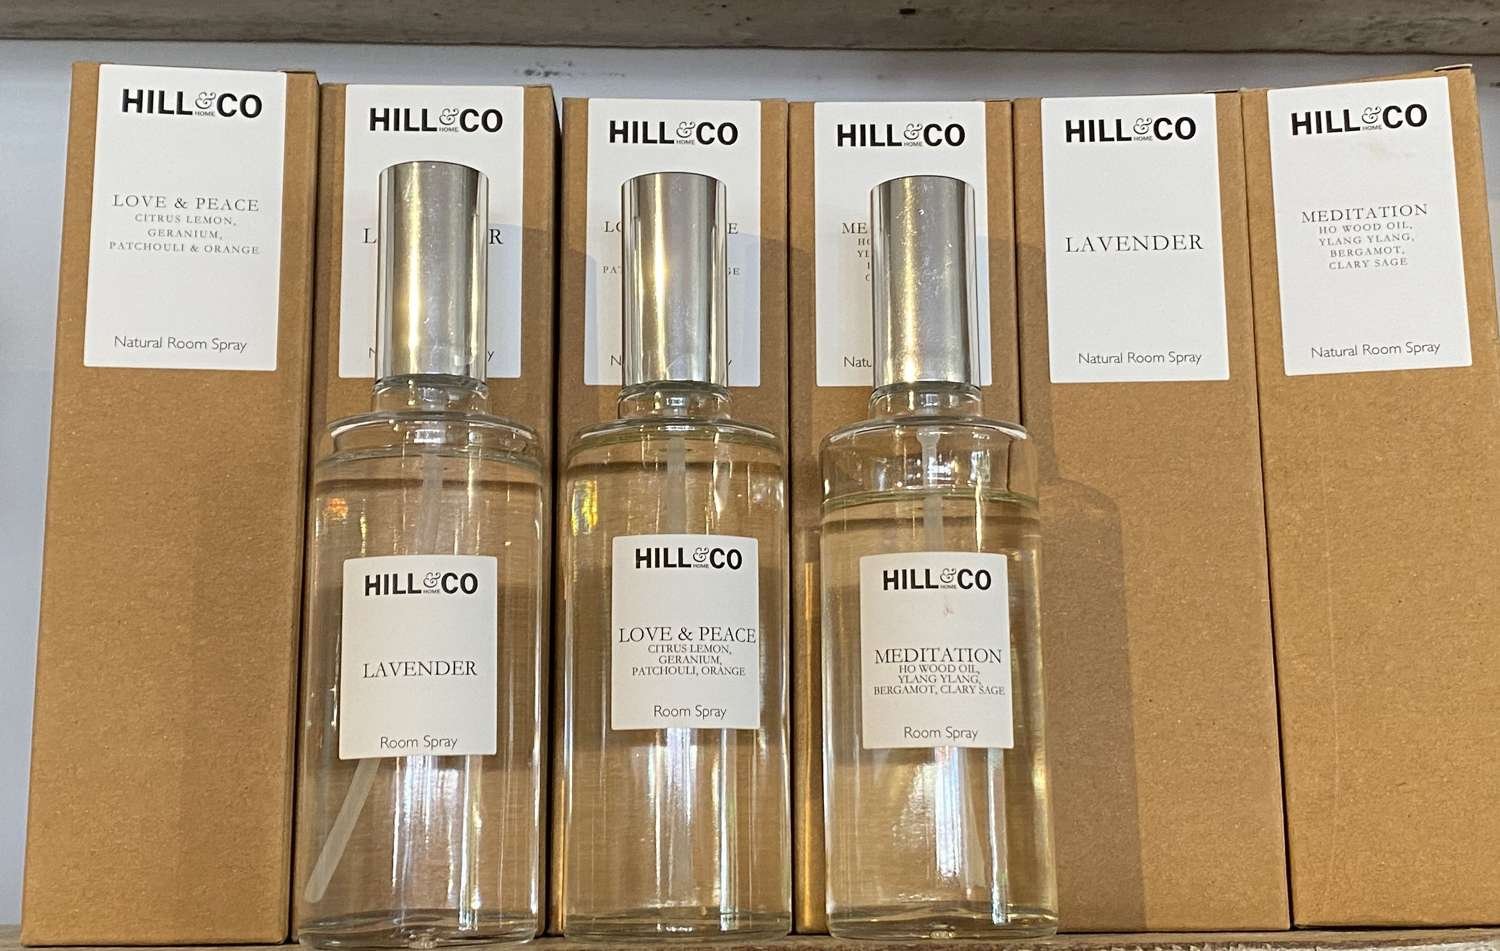 Hill & Co Room & Pillow Sprays